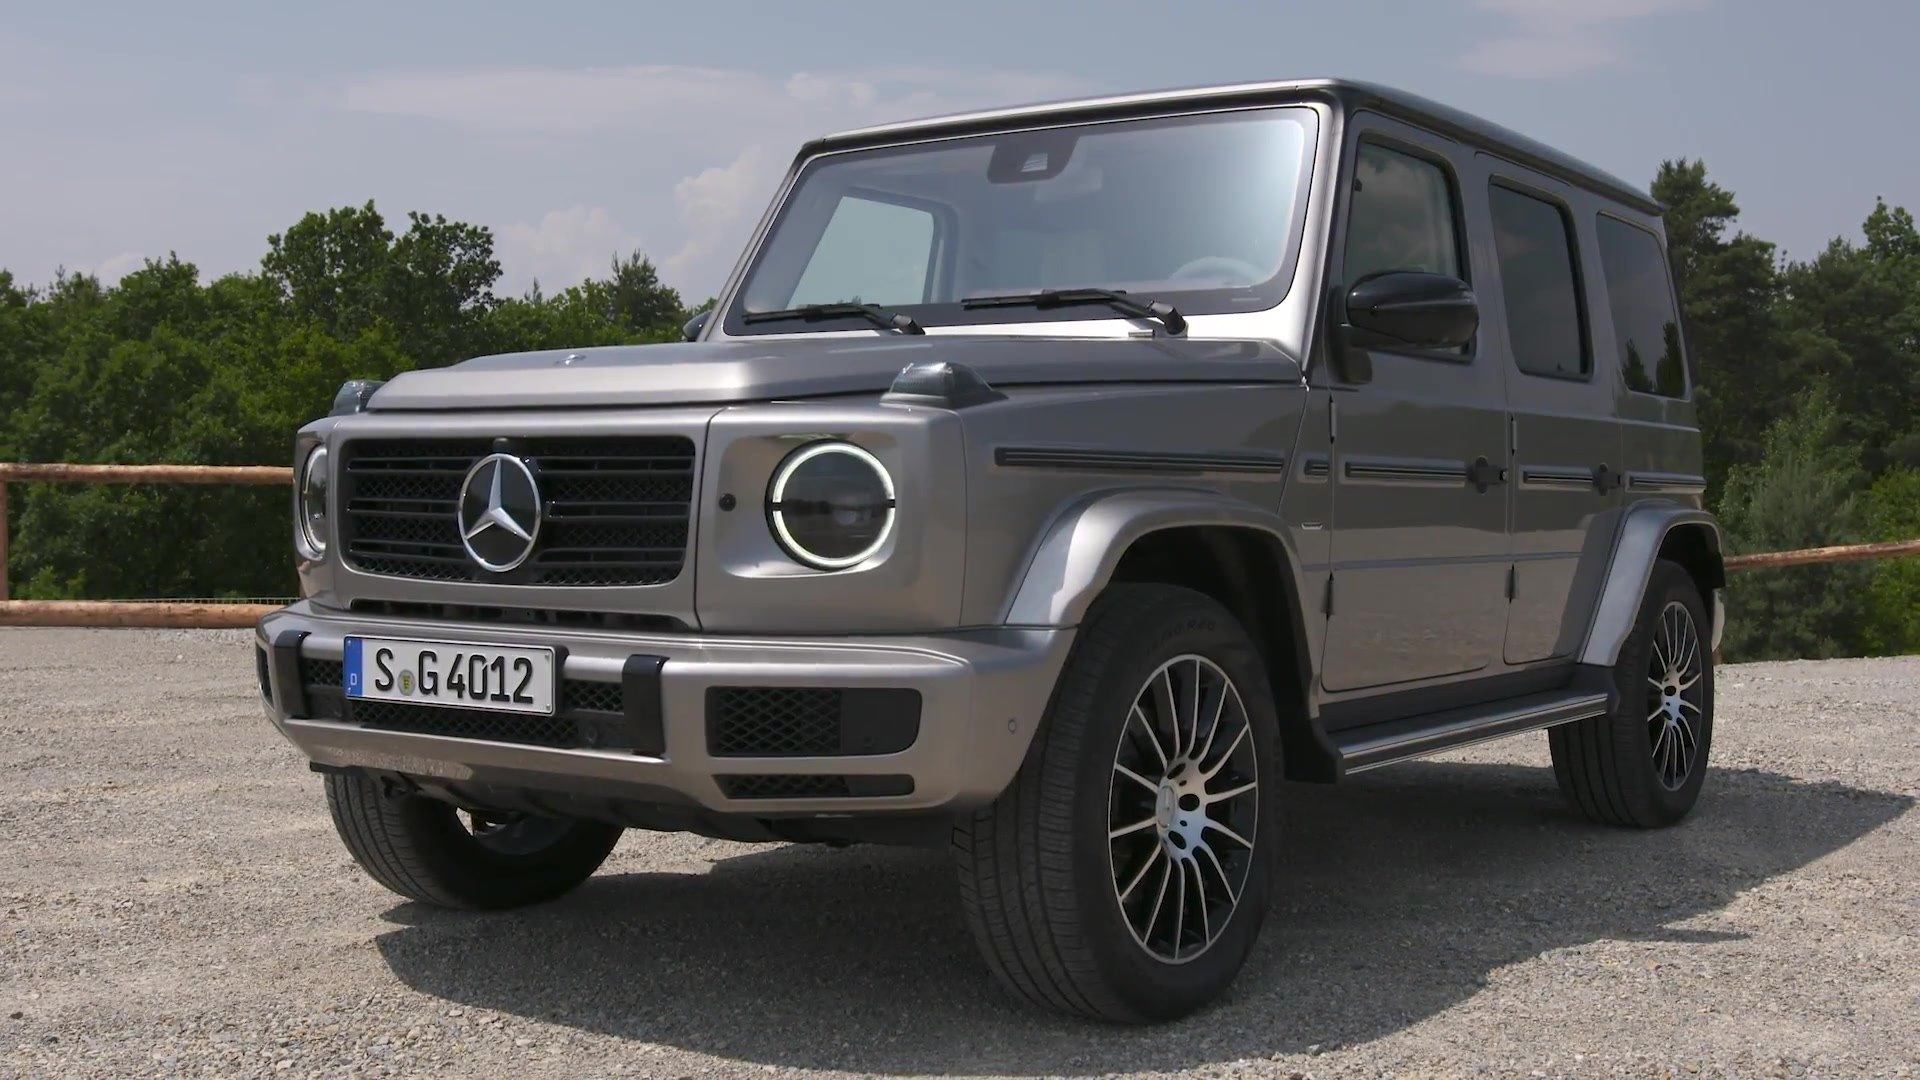 Mercedes Benz G 400 D In Mojave Silver Driving Video Video Dailymotion